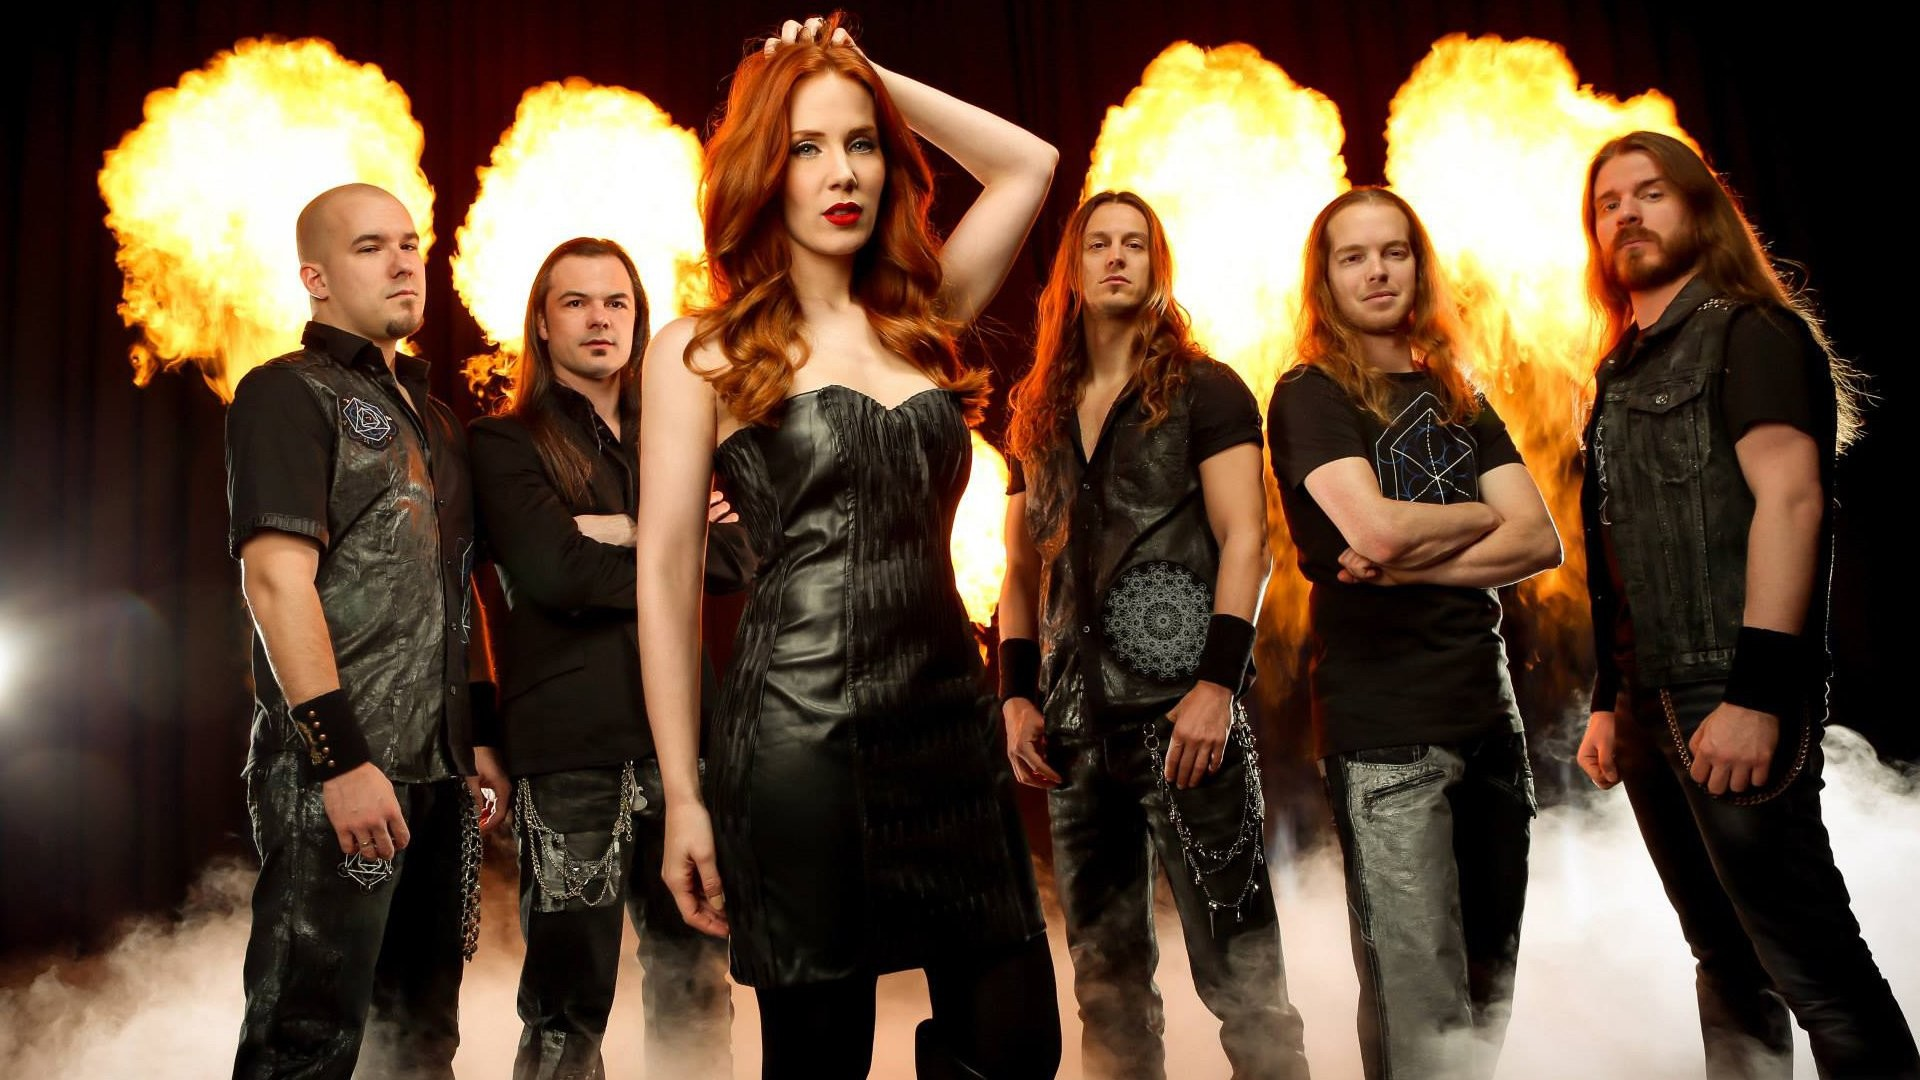 1920x1080 Epica imagens Epica HD wallpaper and background fotografias (36233403) ...